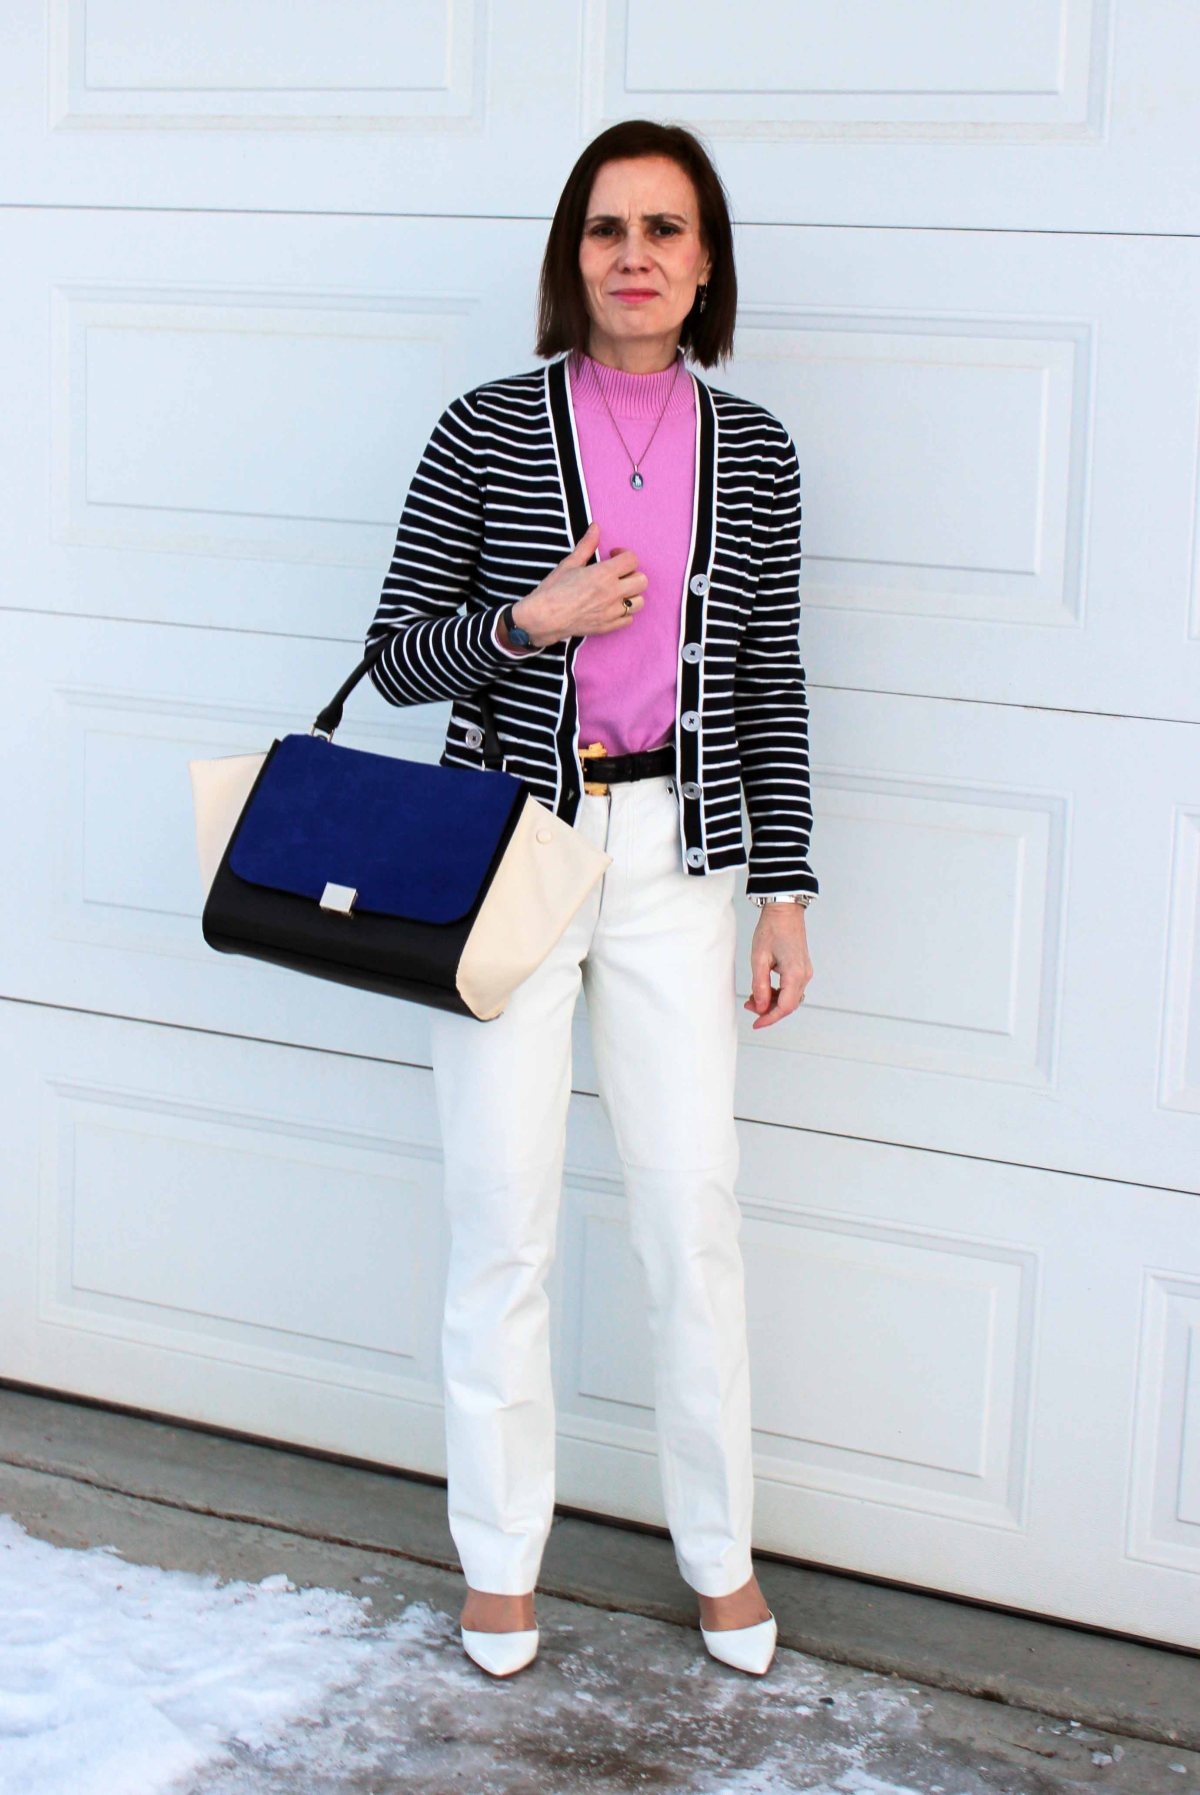 older woman in blue white and pink office outfit